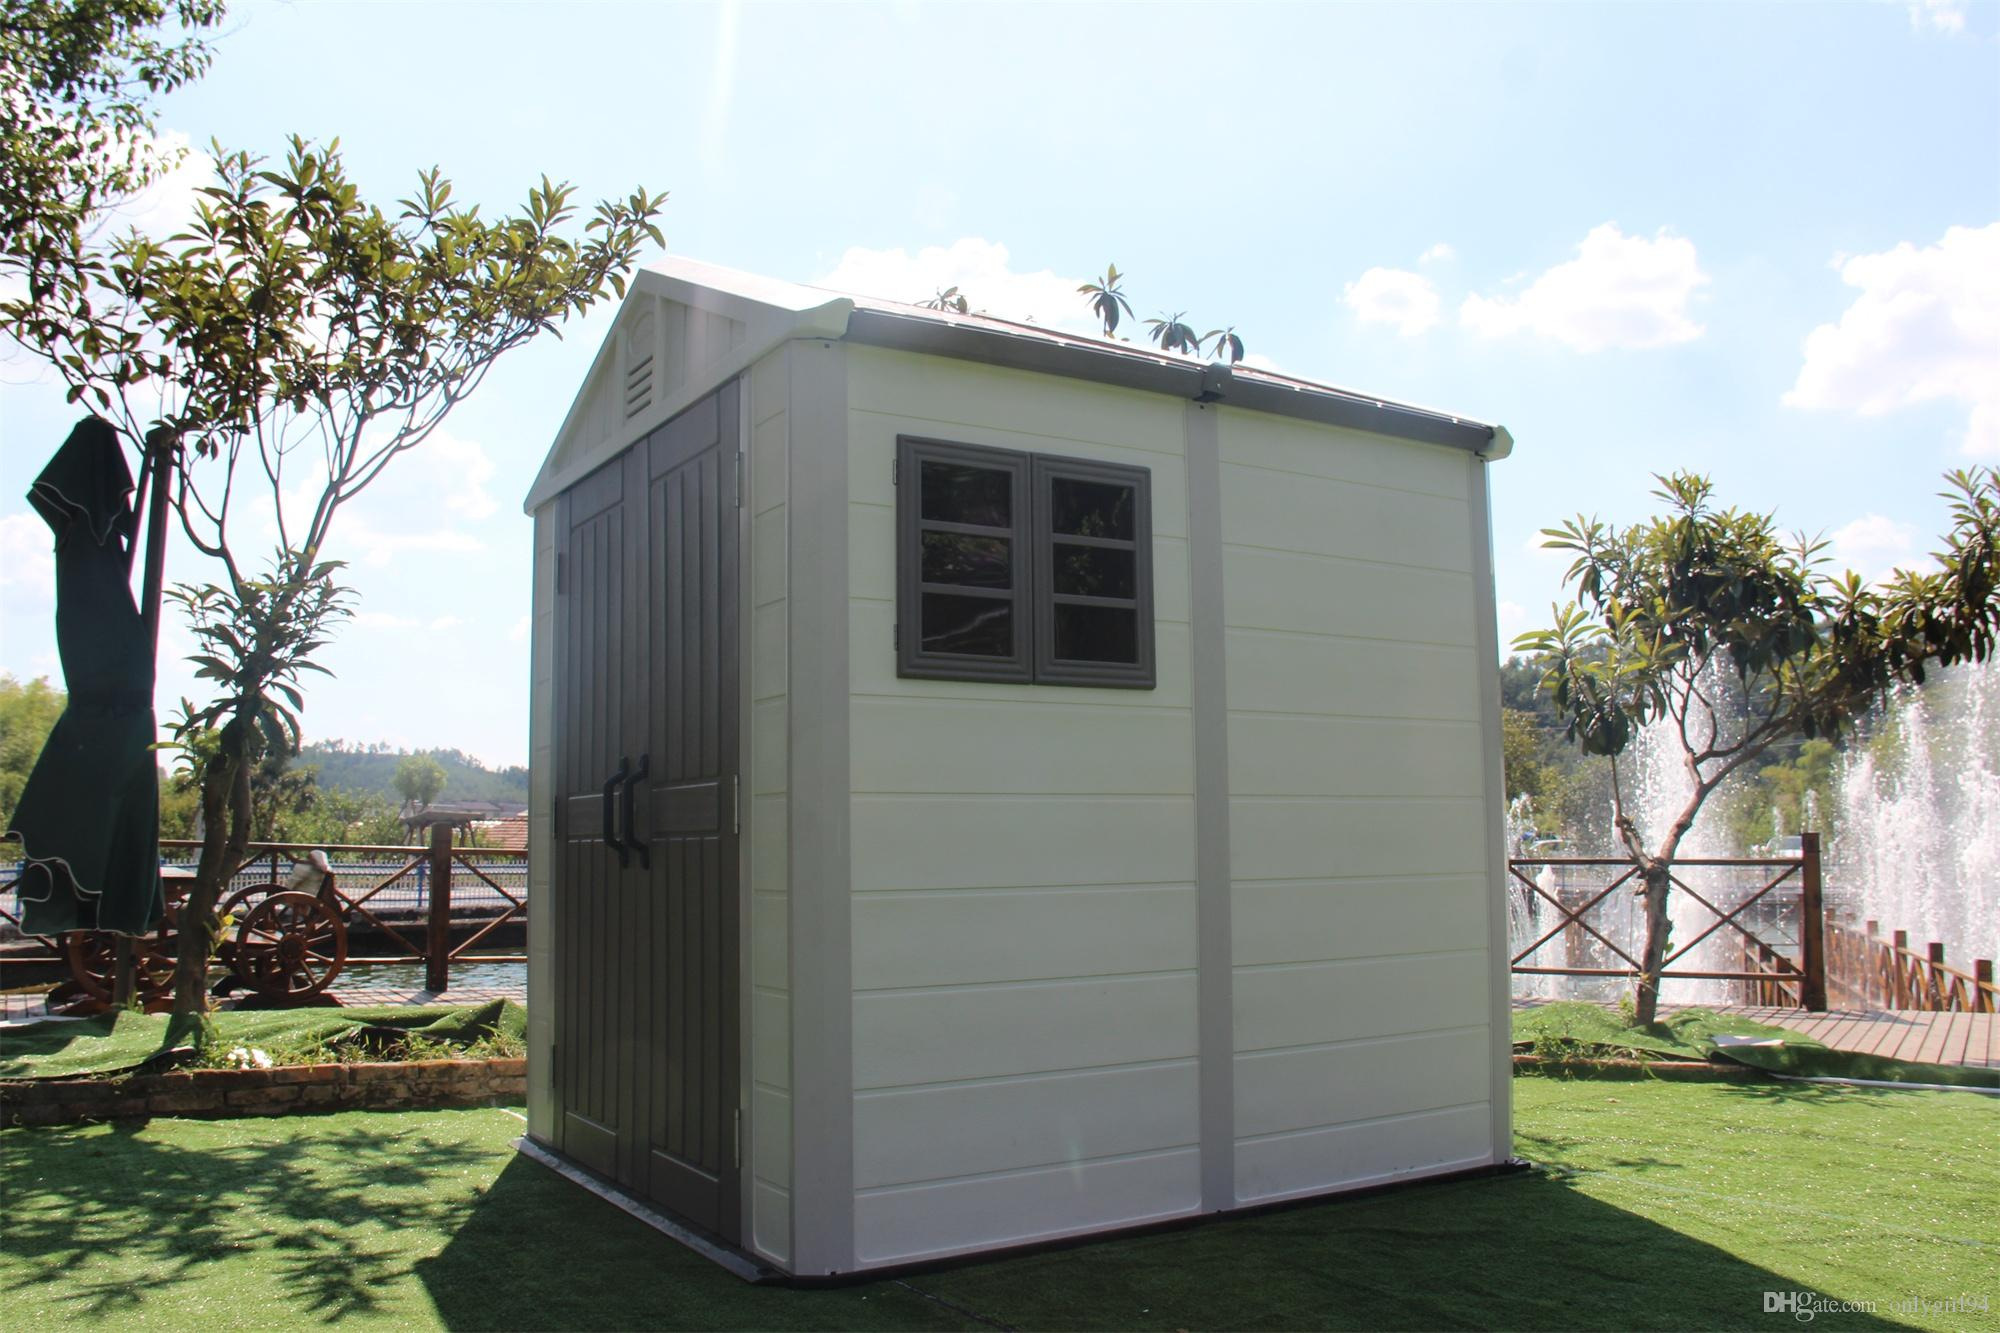 2018 2017 High Quanlity Outdoor Shed Plastic, Shed Garden Storage, Mobile  House, Prefab House For Home Used From Onlygirl94, $702.52 | Dhgate.Com